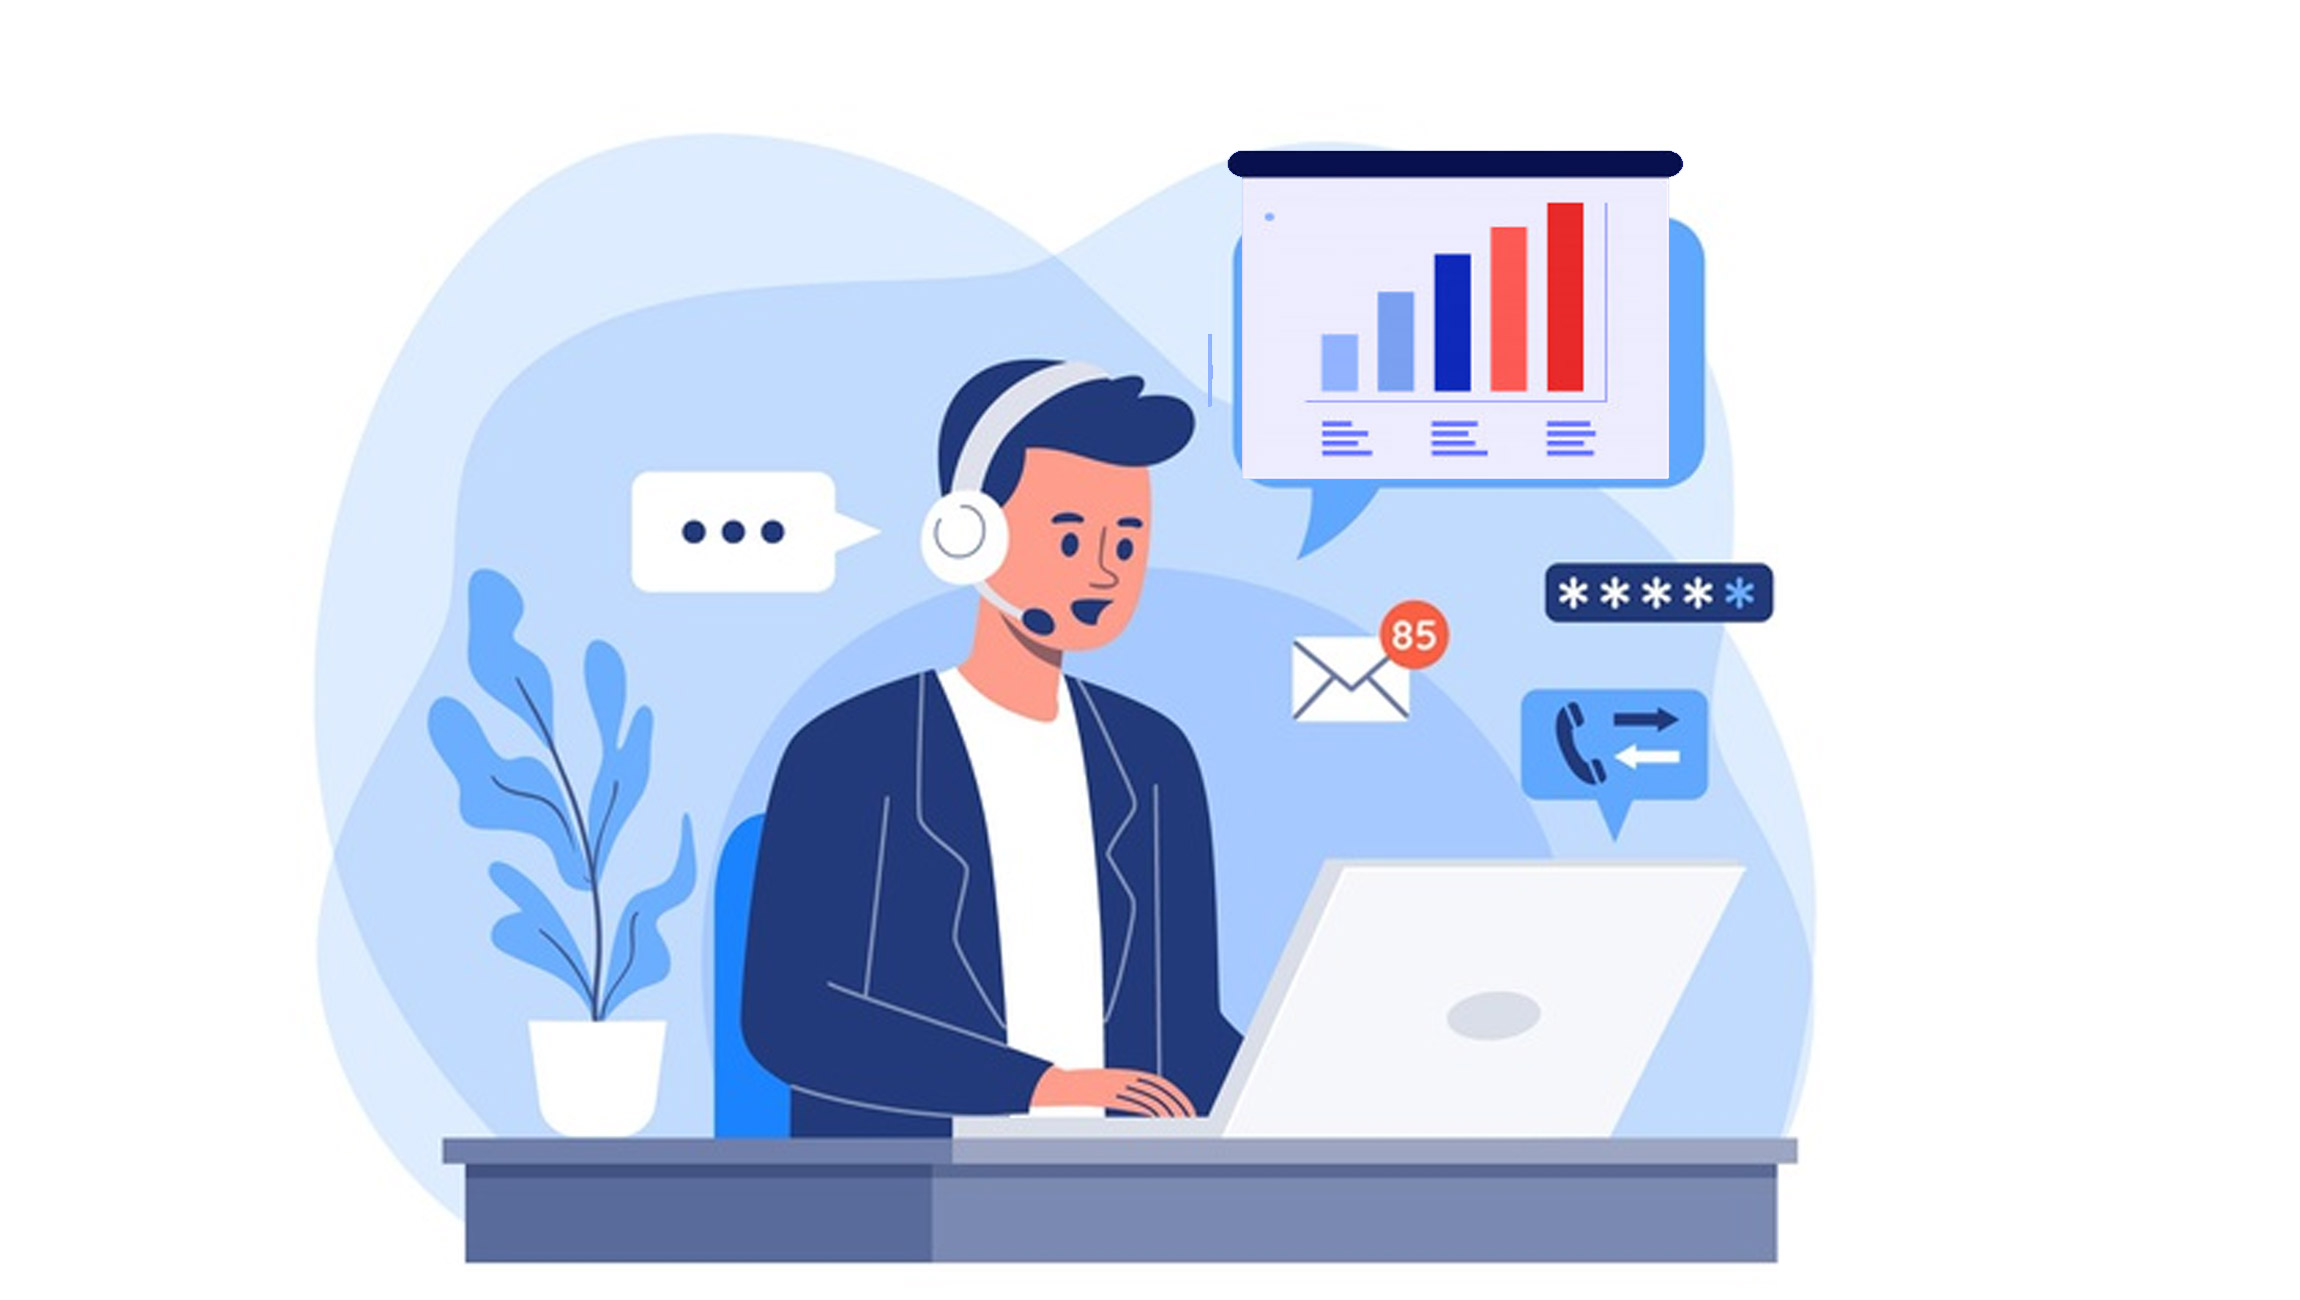 Why Sales Leaders Need Customer Support Platforms? Top Customer Support Platforms To Look For In 2021